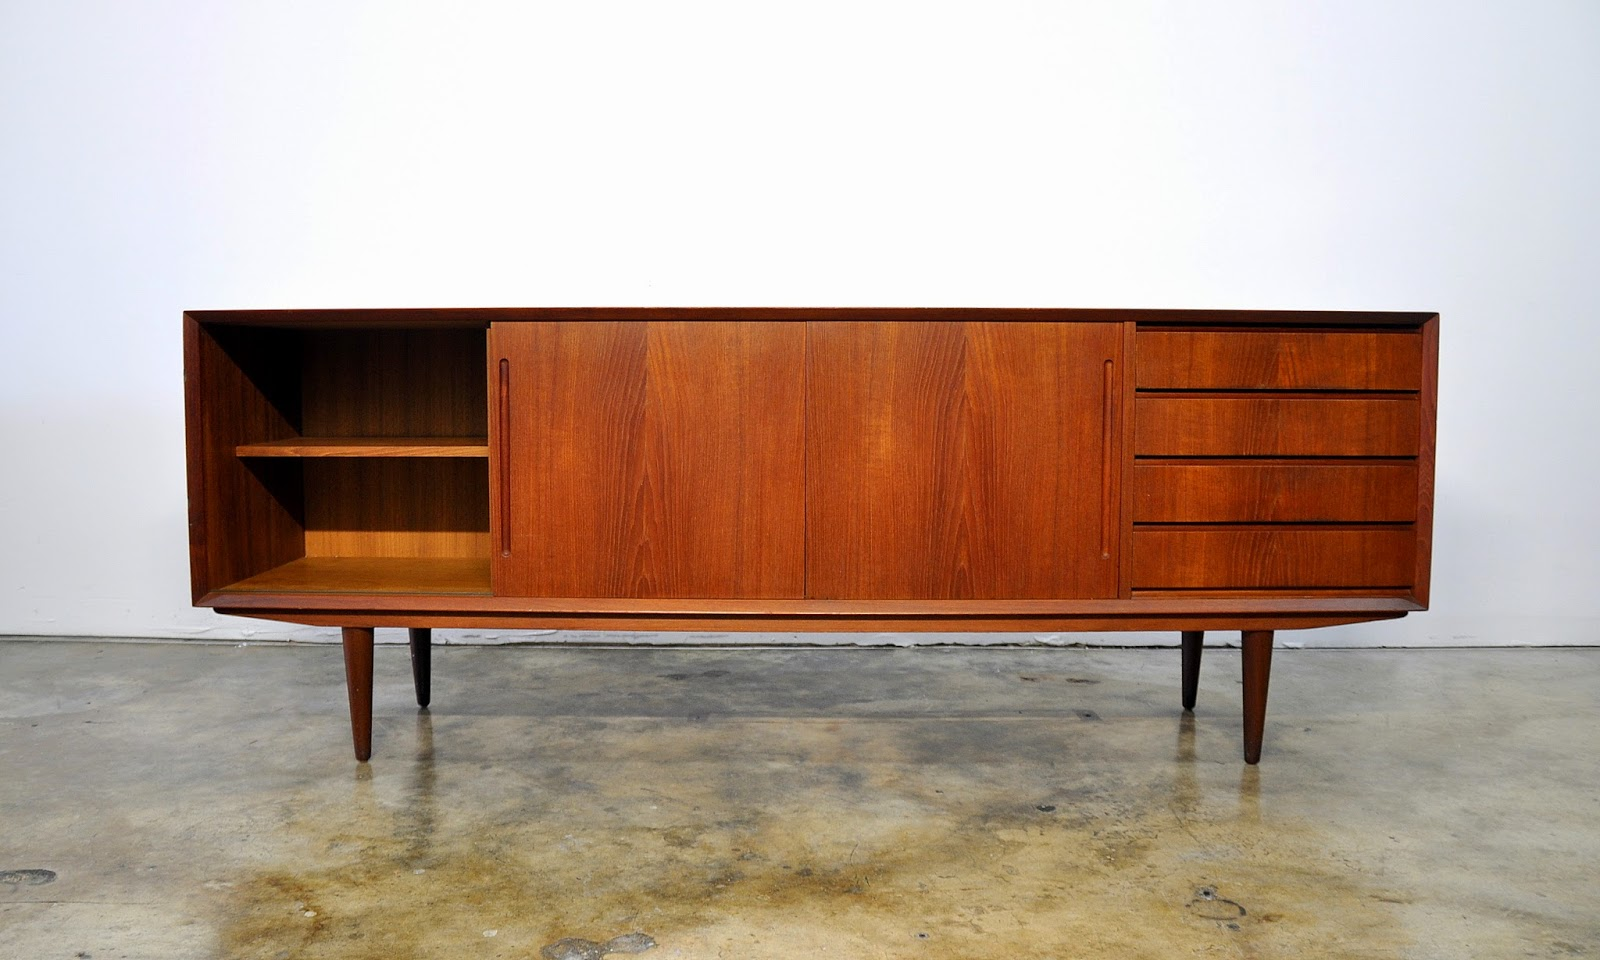 Danish Teak Credenza : Select modern danish teak credenza buffet sideboard or bar